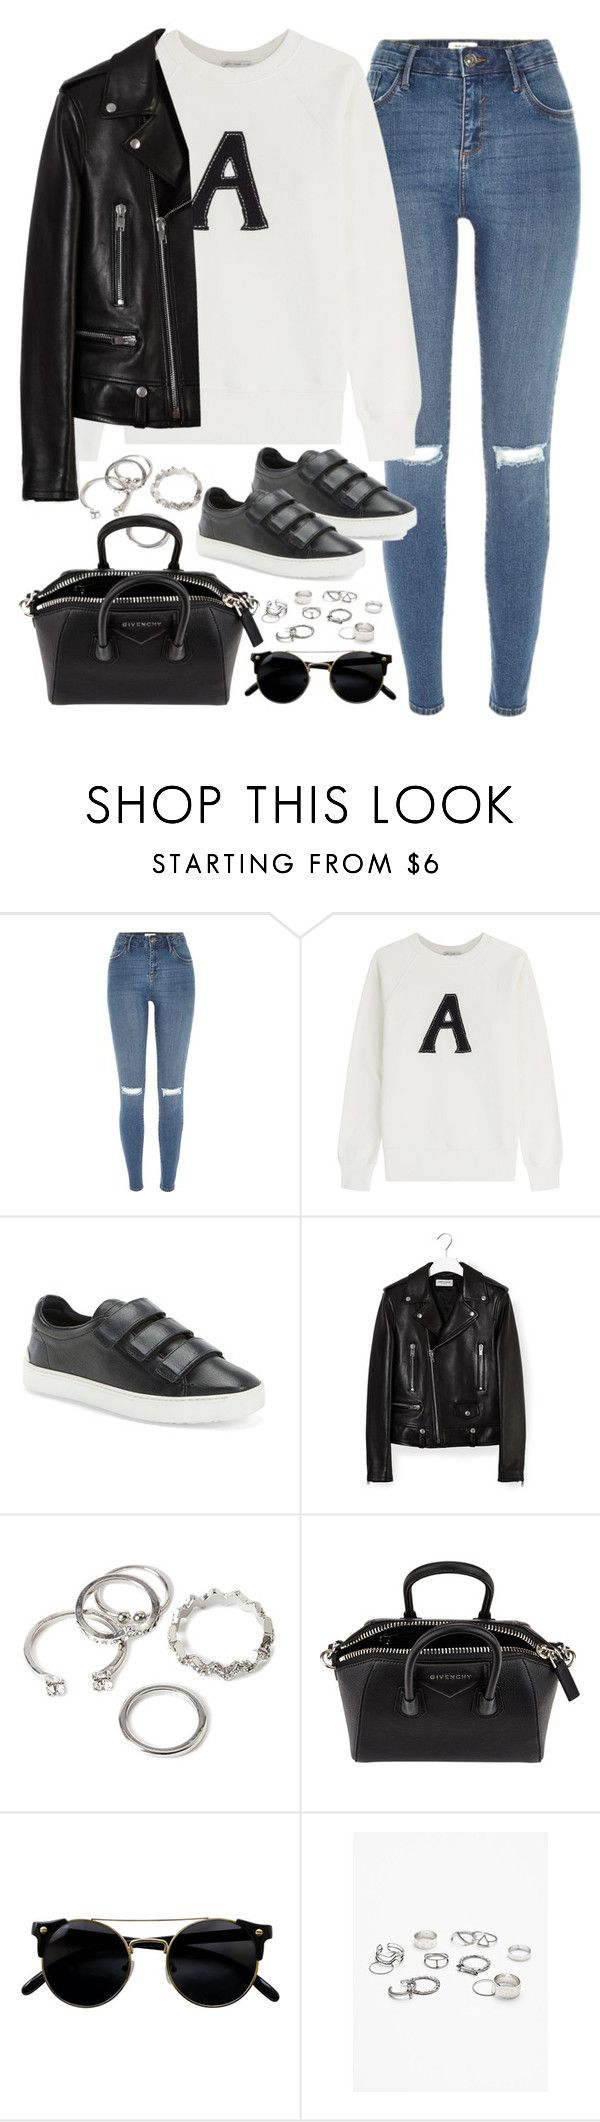 """""""Untitled#4448"""" by fashionnfacts ❤ liked on Polyvore featuring River Island, AG Adriano Goldschmied, rag & bone, Yves Saint Laurent, Forever 21, Givenchy and Free People"""